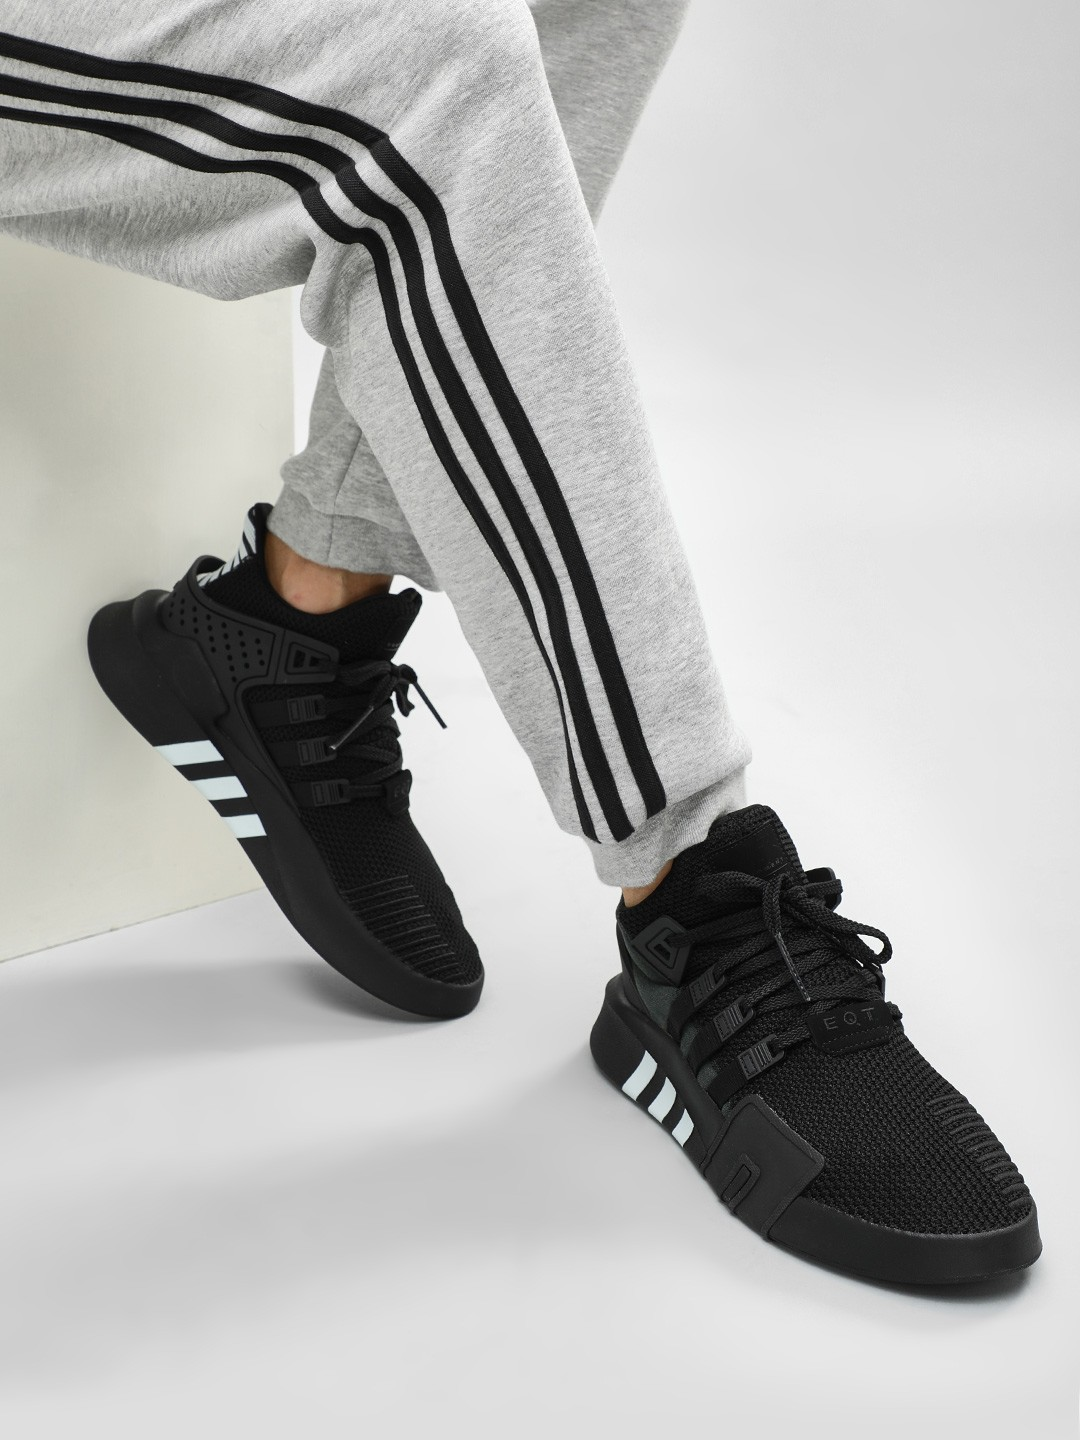 best service 18773 bc6b4 Buy Adidas Originals Black EQT Bask ADV Shoes for Men Online ...